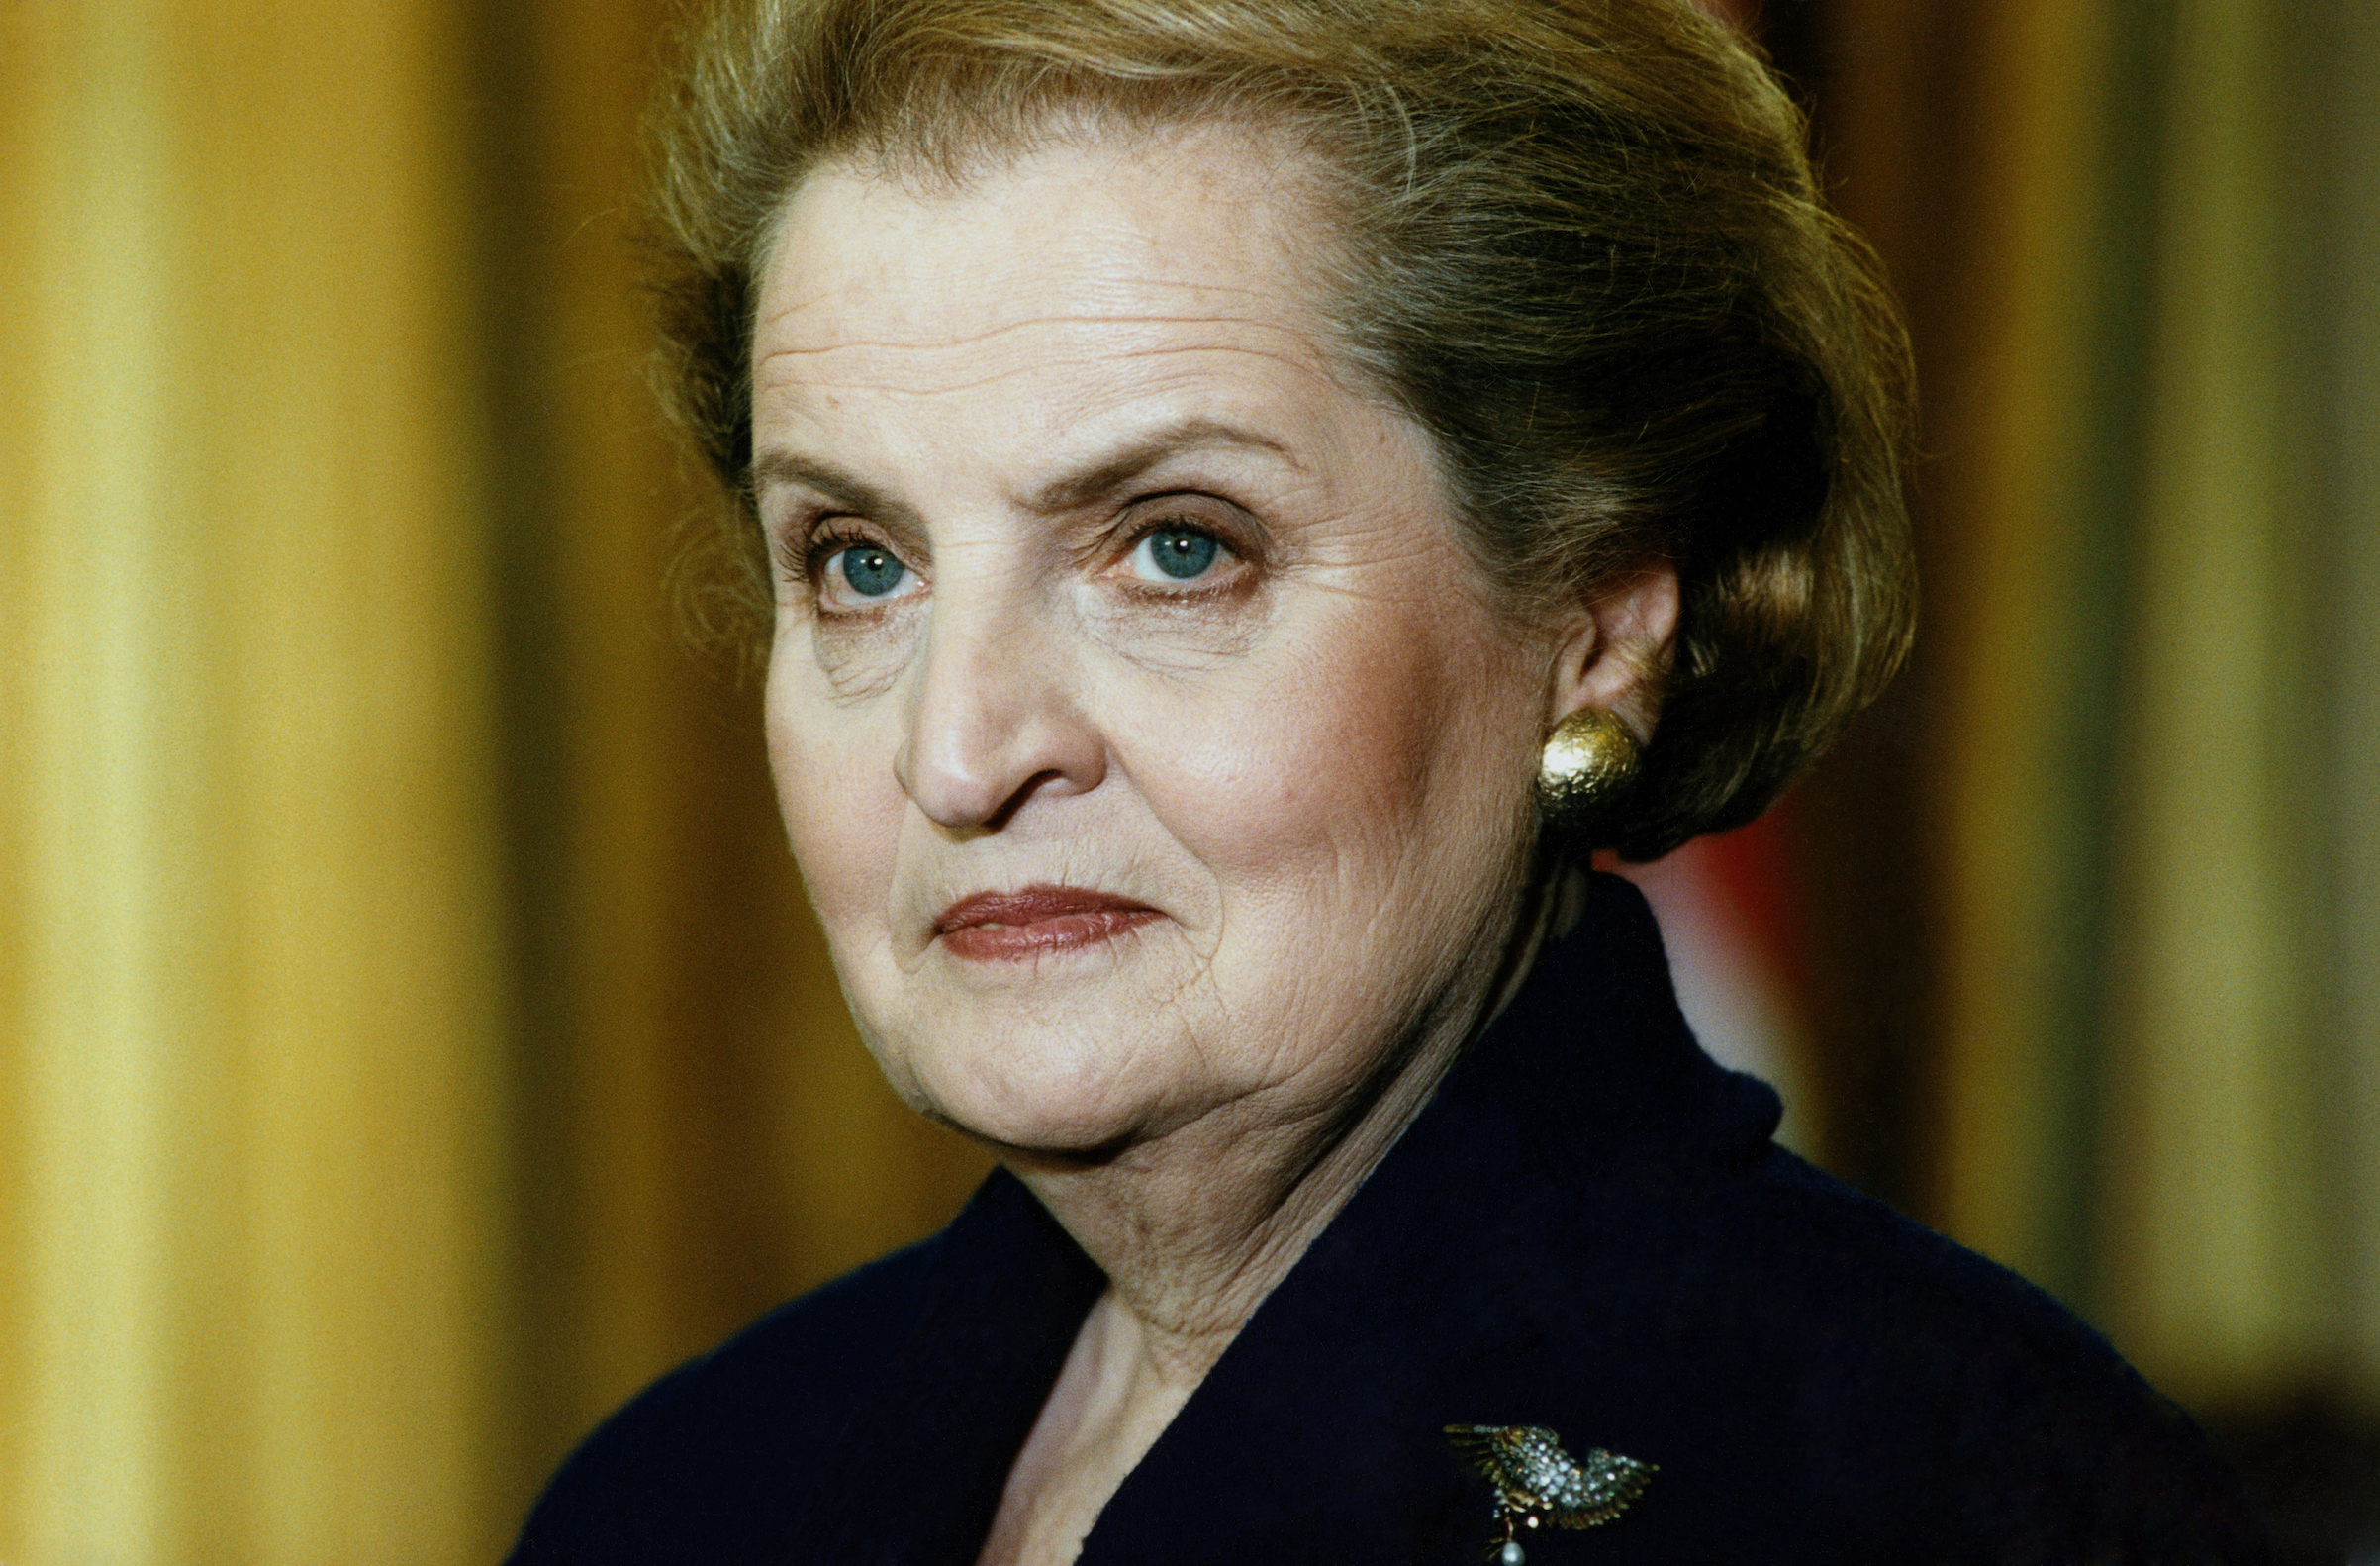 Madeleine Albright pictured in 1997, the year she became the first woman to hold the office of U.S. Secretary of State.